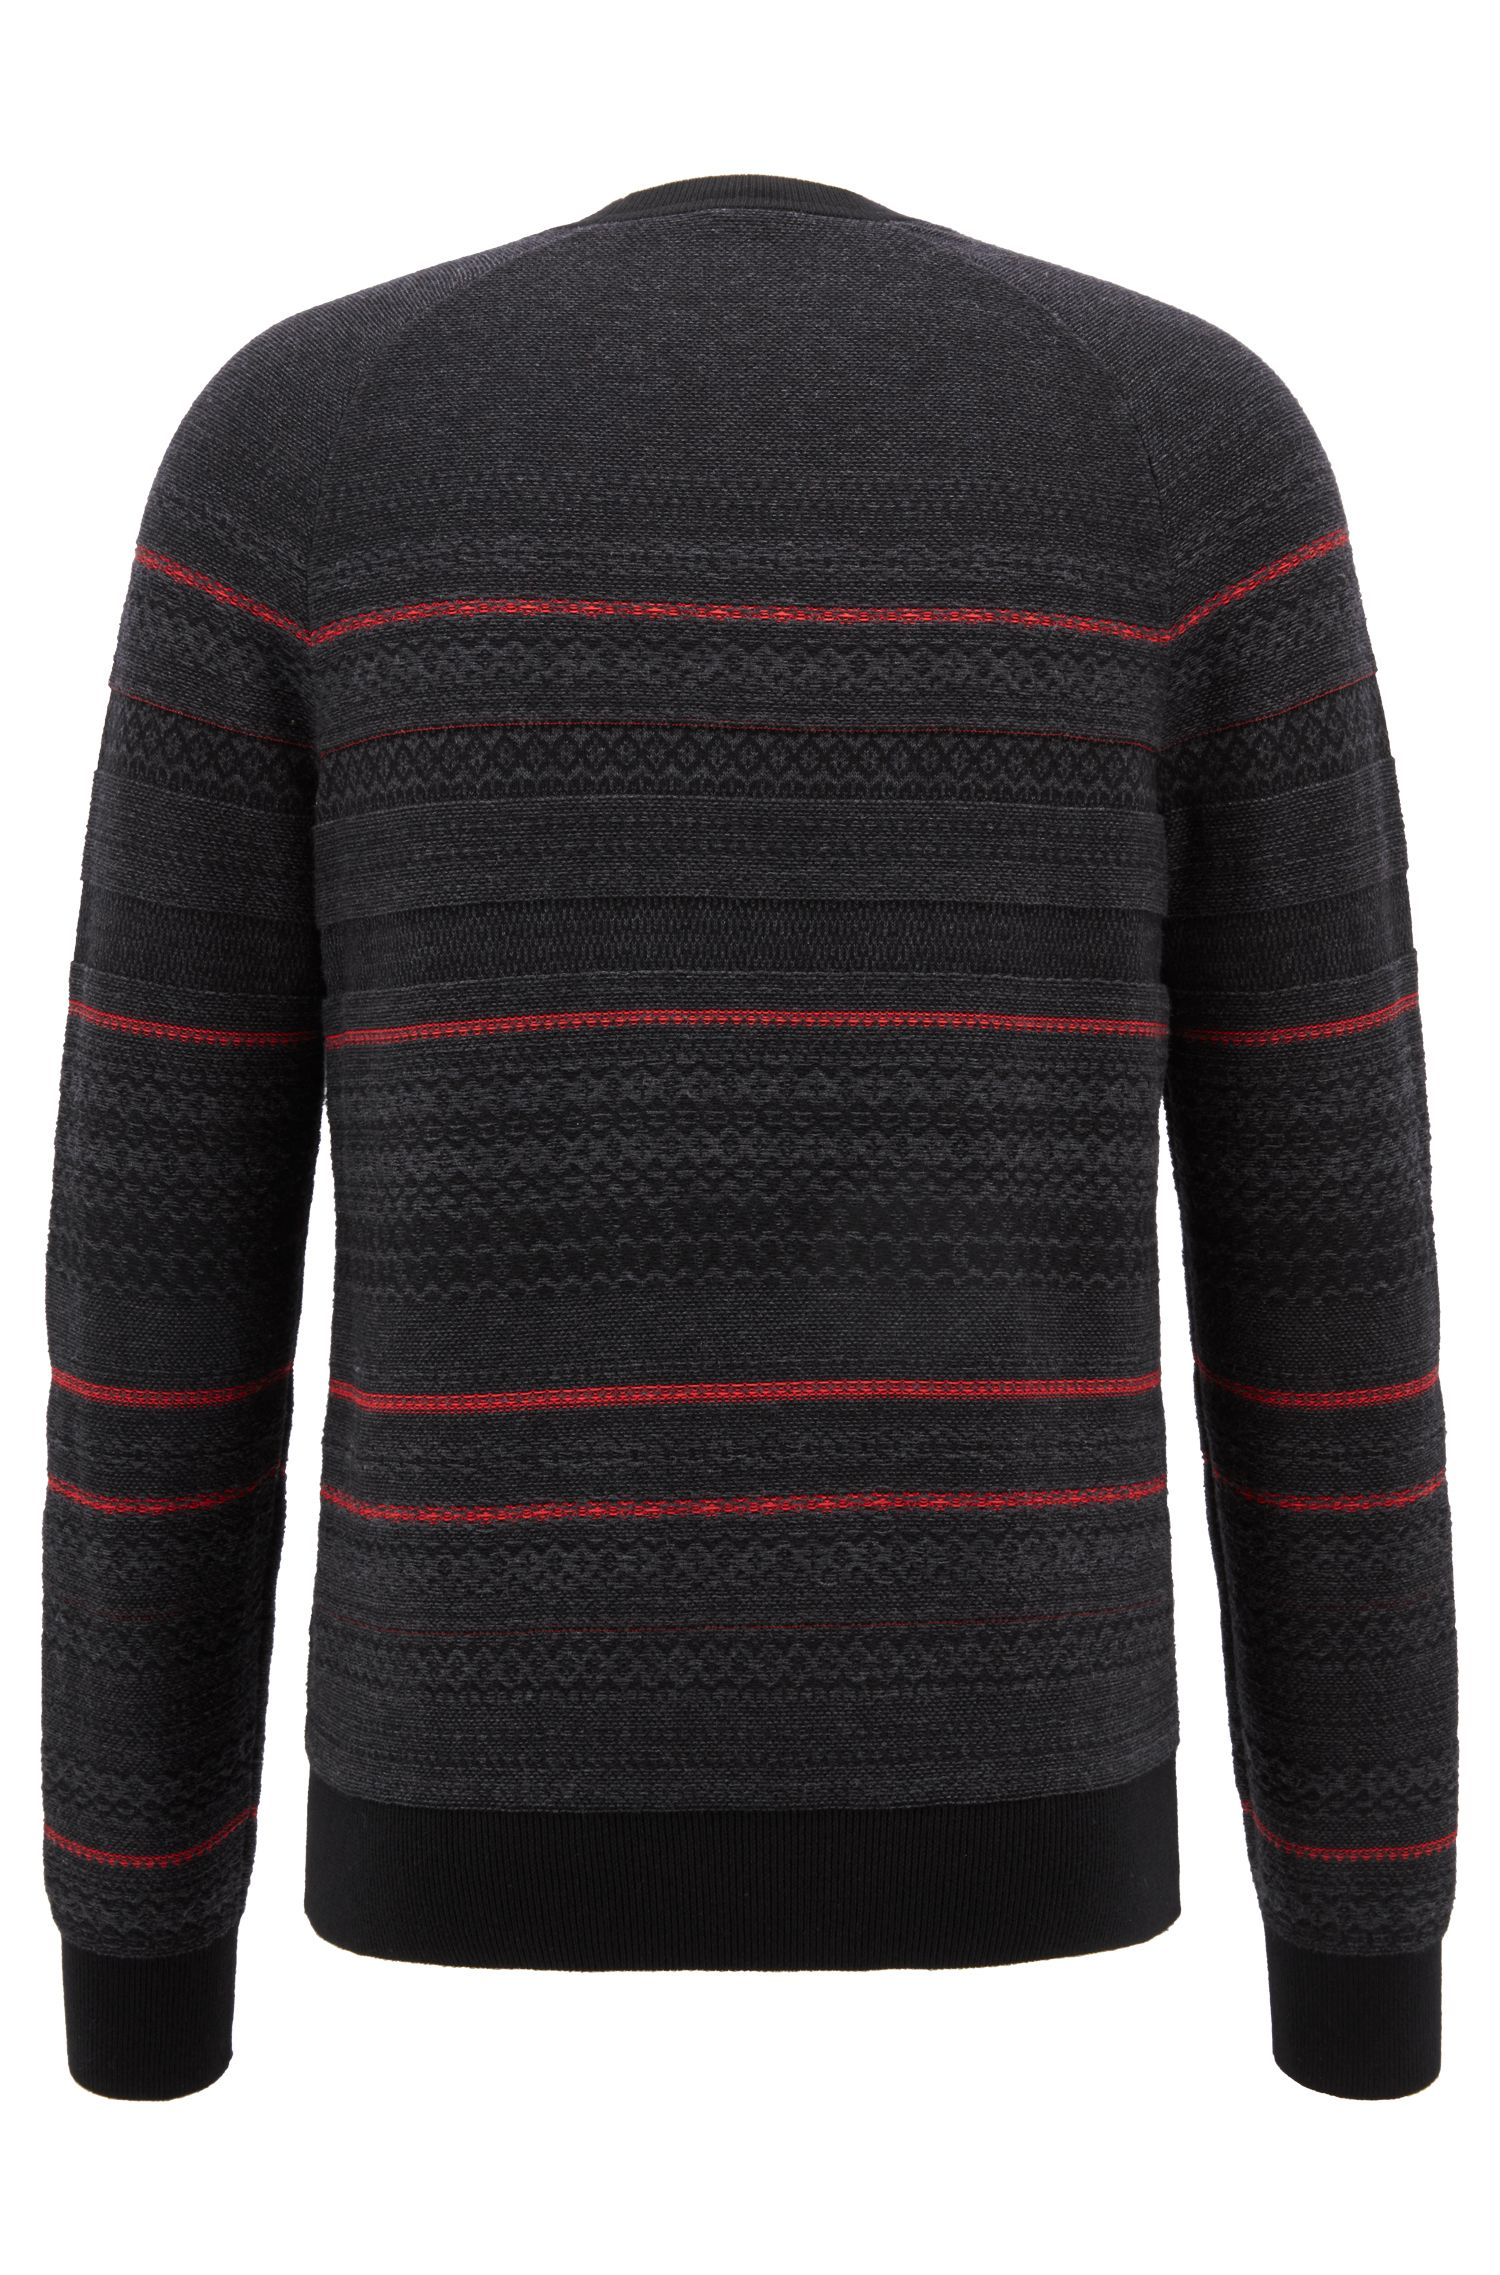 Crew-neck sweater in three-color cotton-blend jacquard, Black